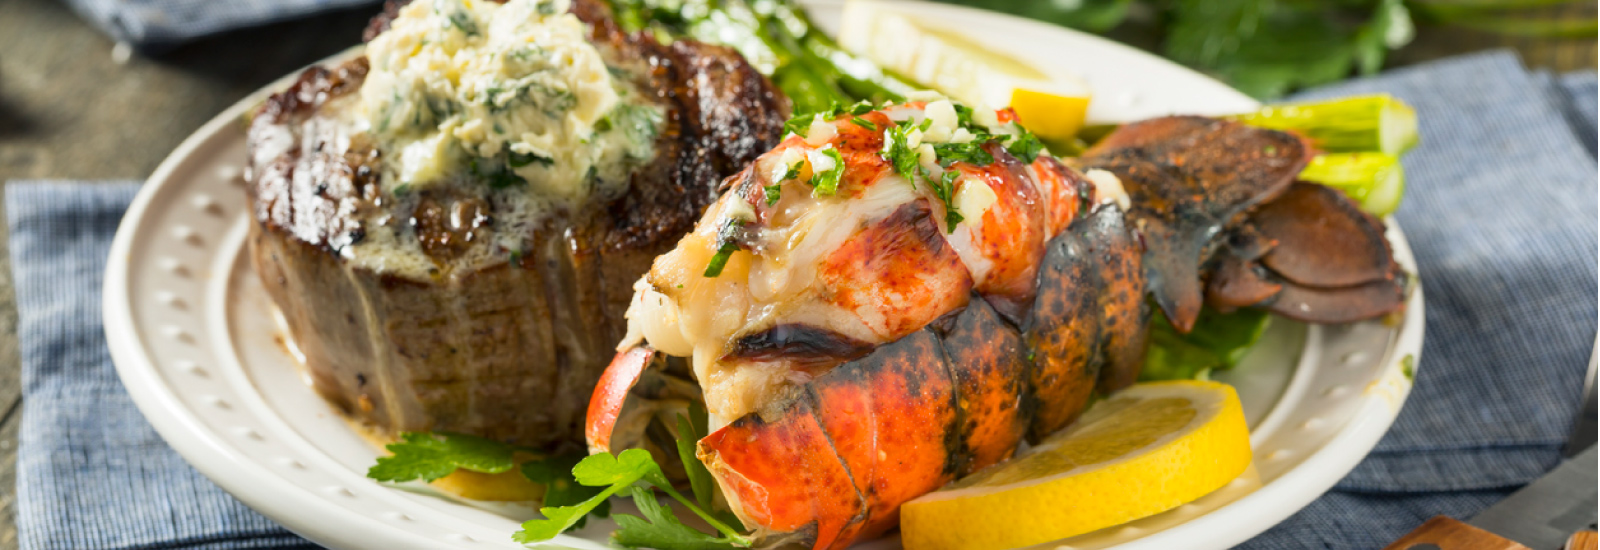 Steak and Seafood Near Dover AFB